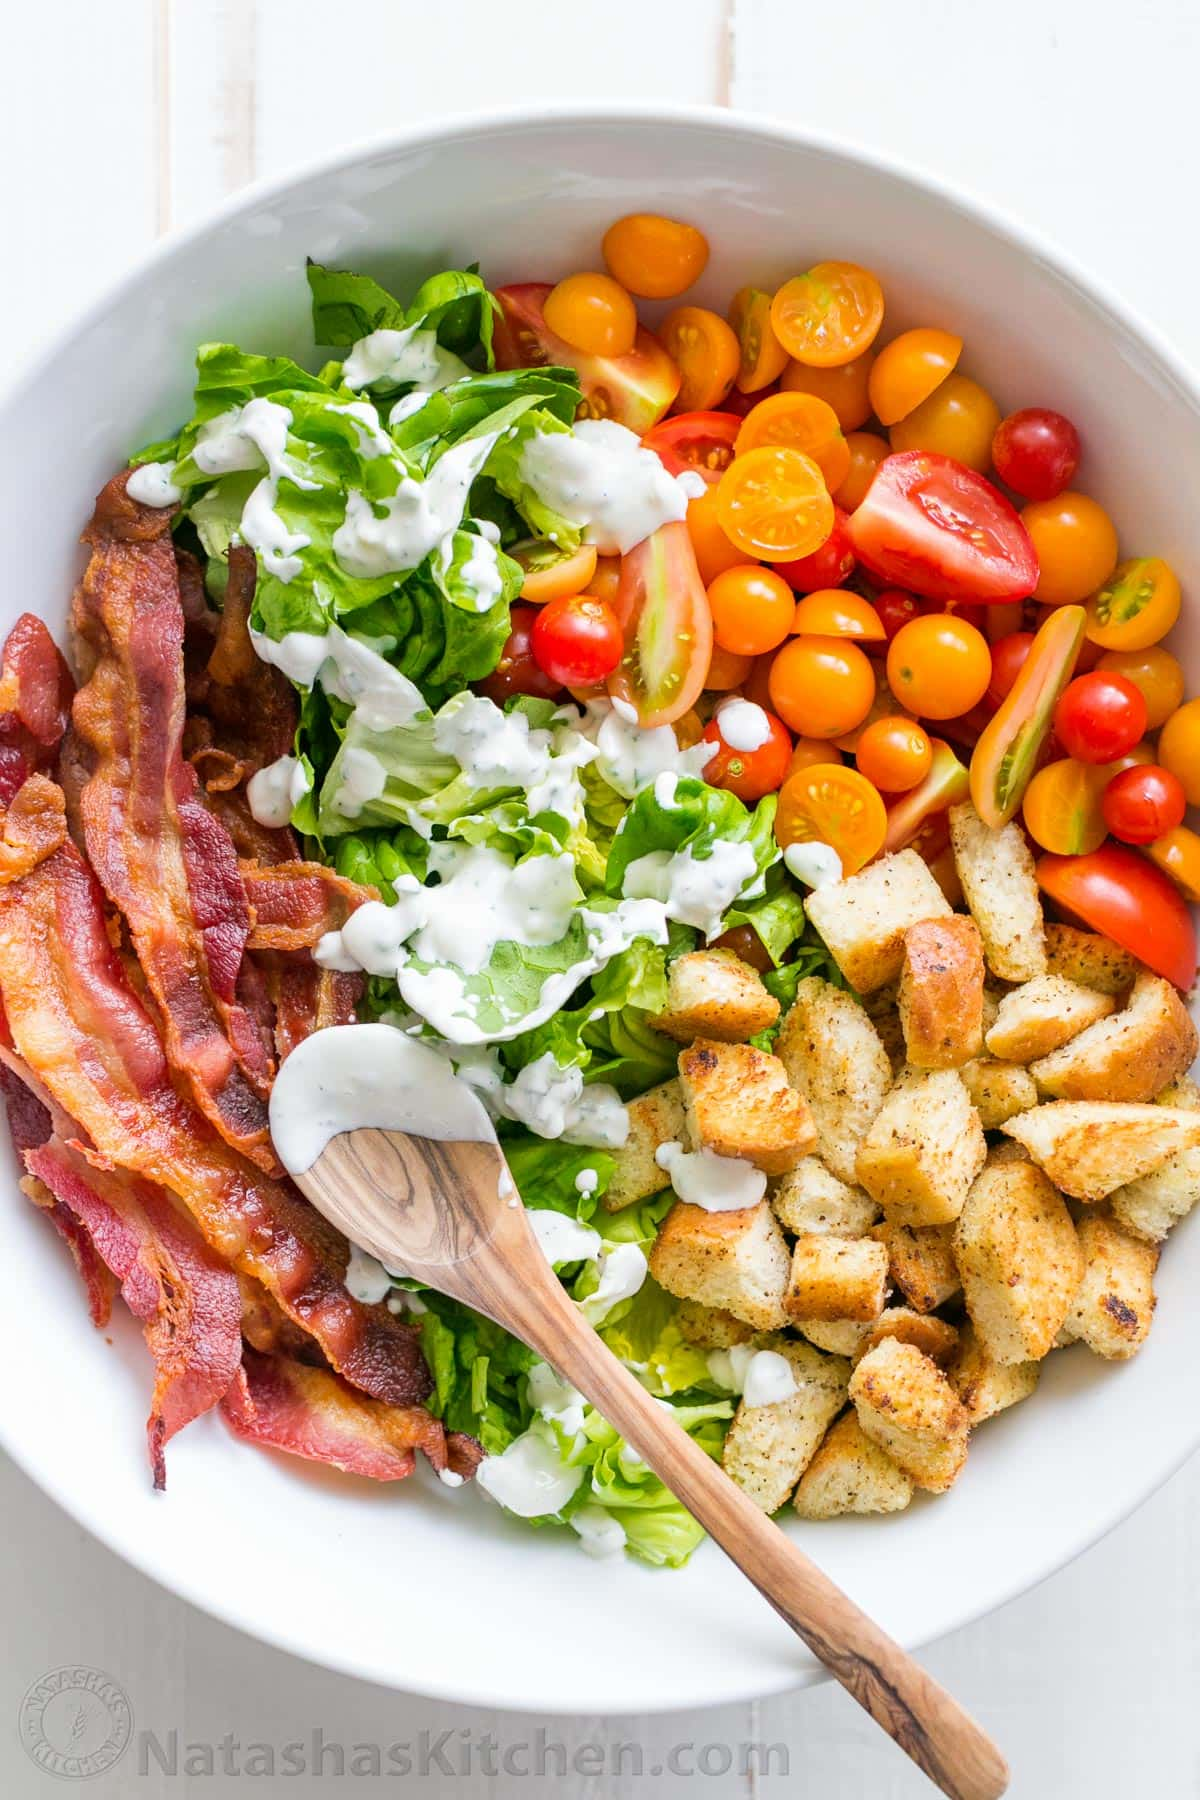 BLT Salad from natashaskitchen.com on foodiecrush.com